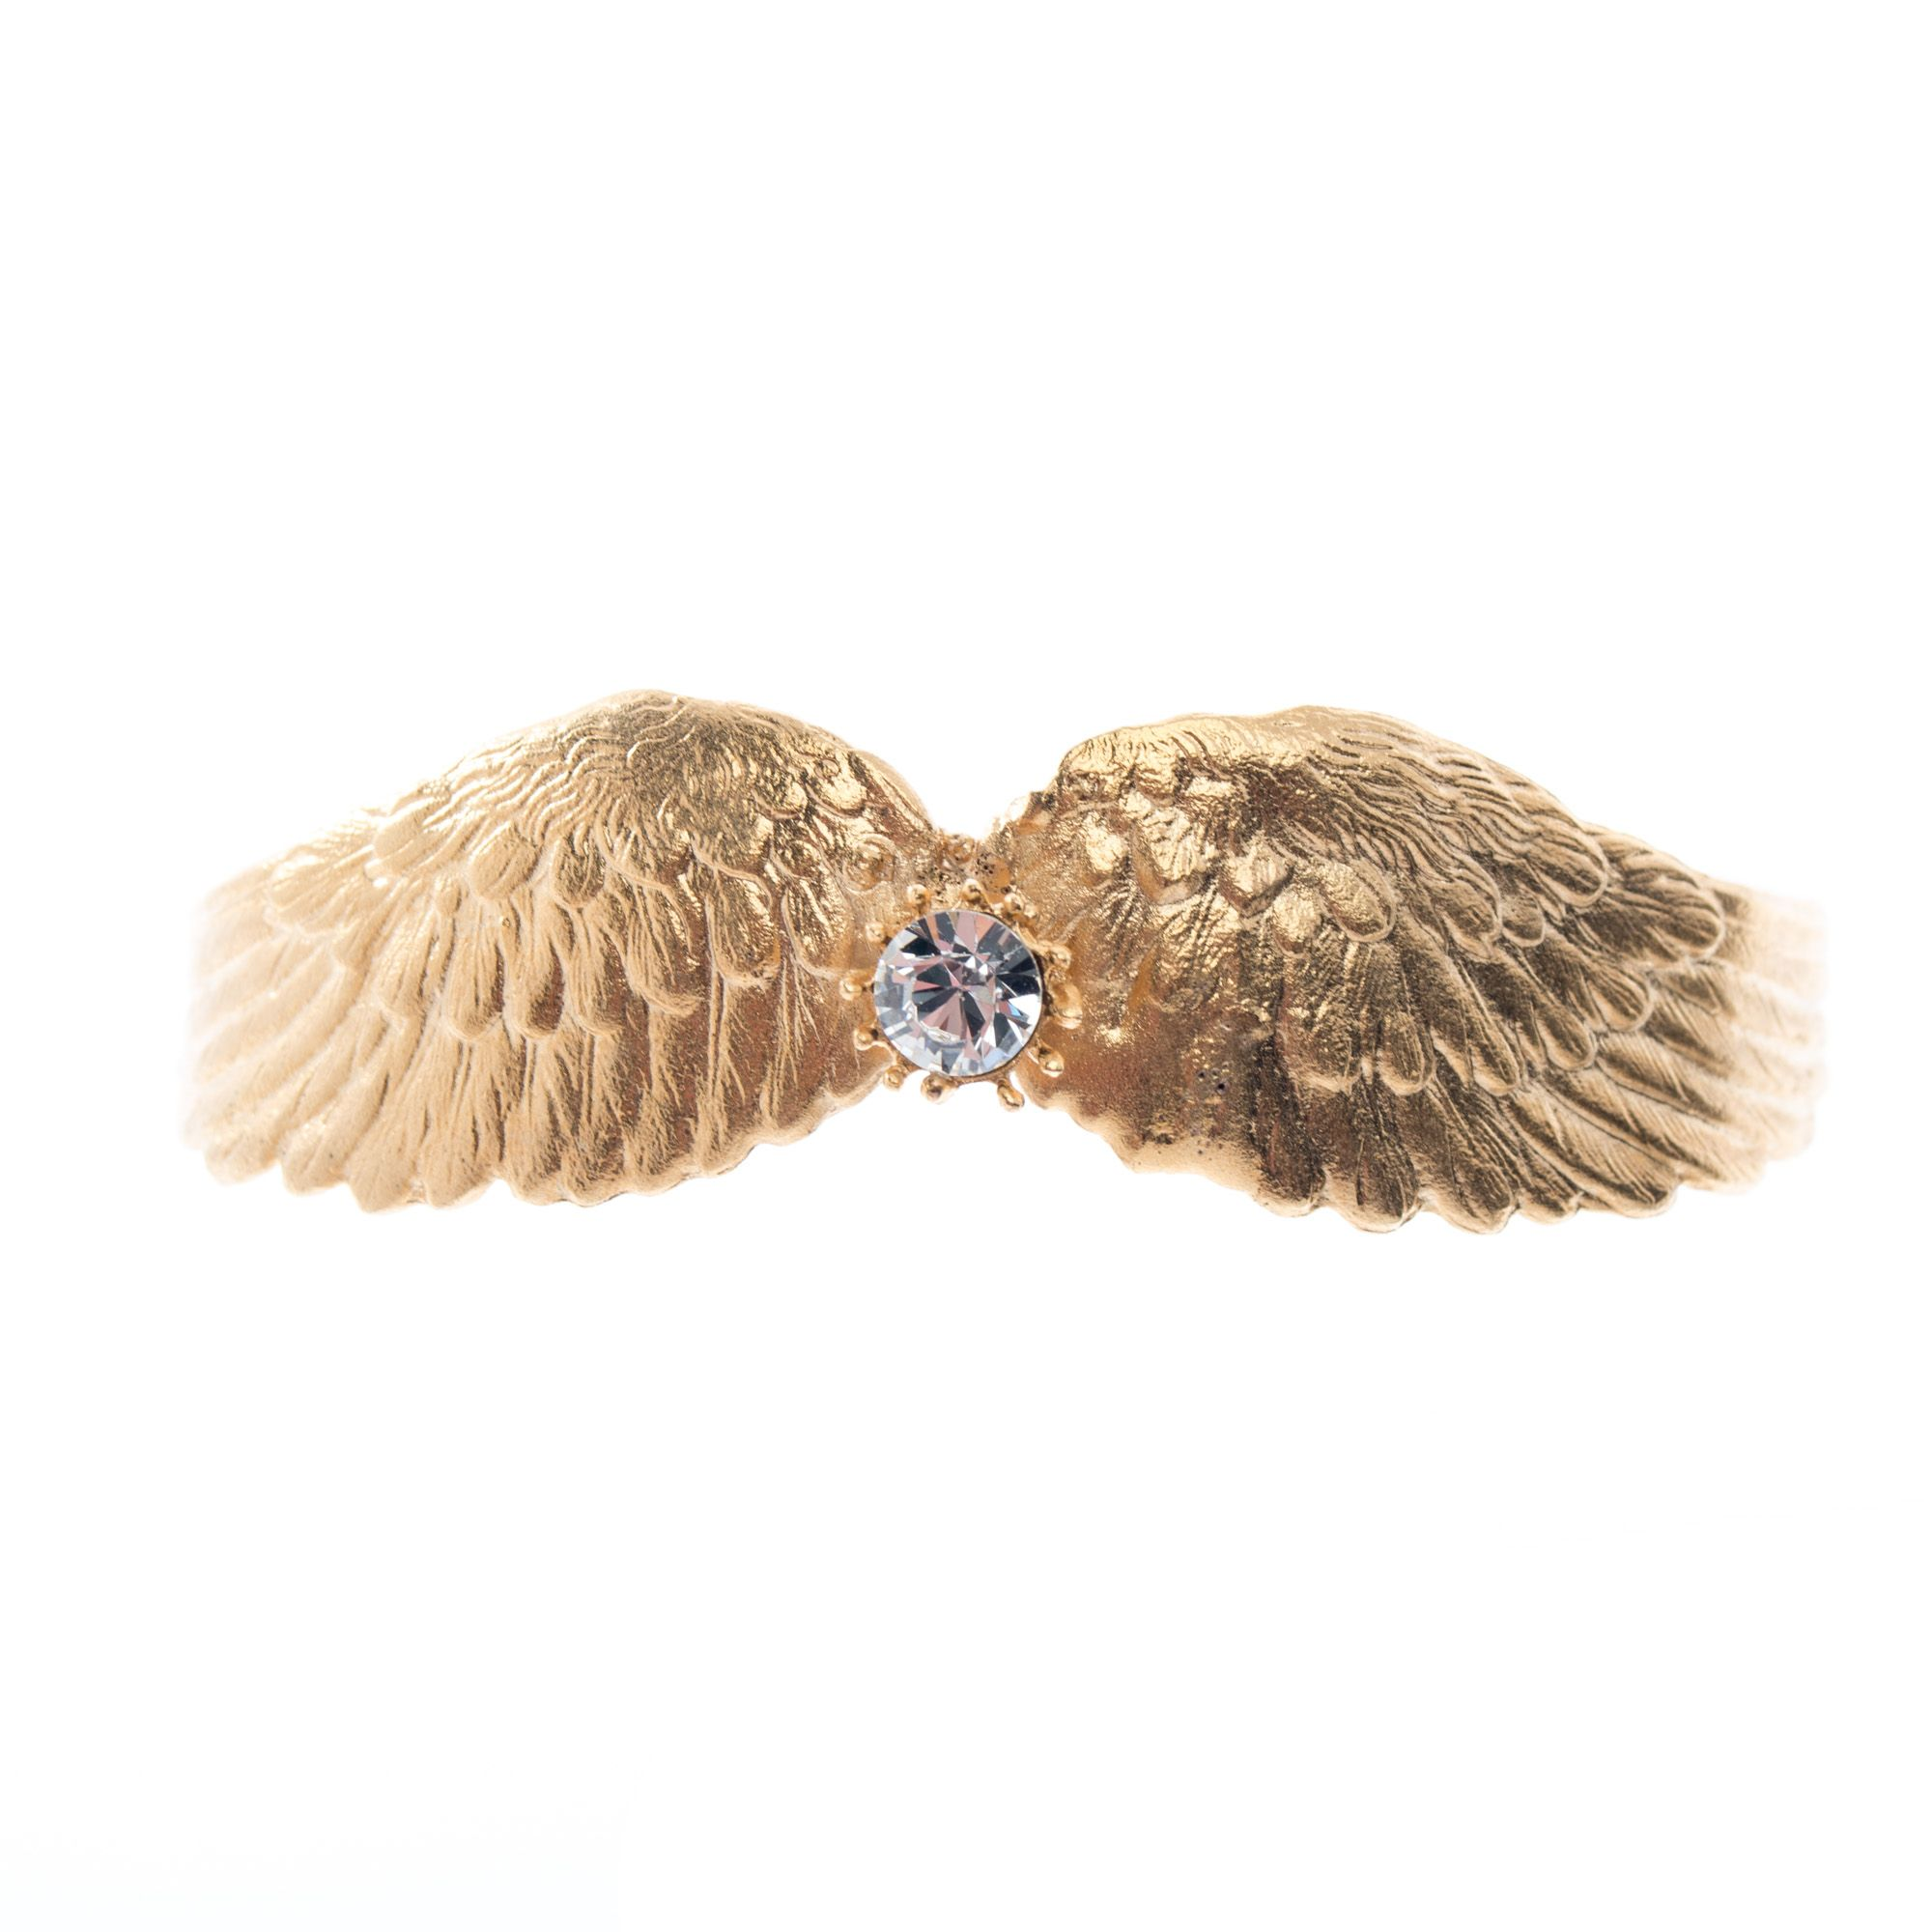 Barbosa Jewelry 24k Gold Plated Wings Crystal Cuff Bracelet